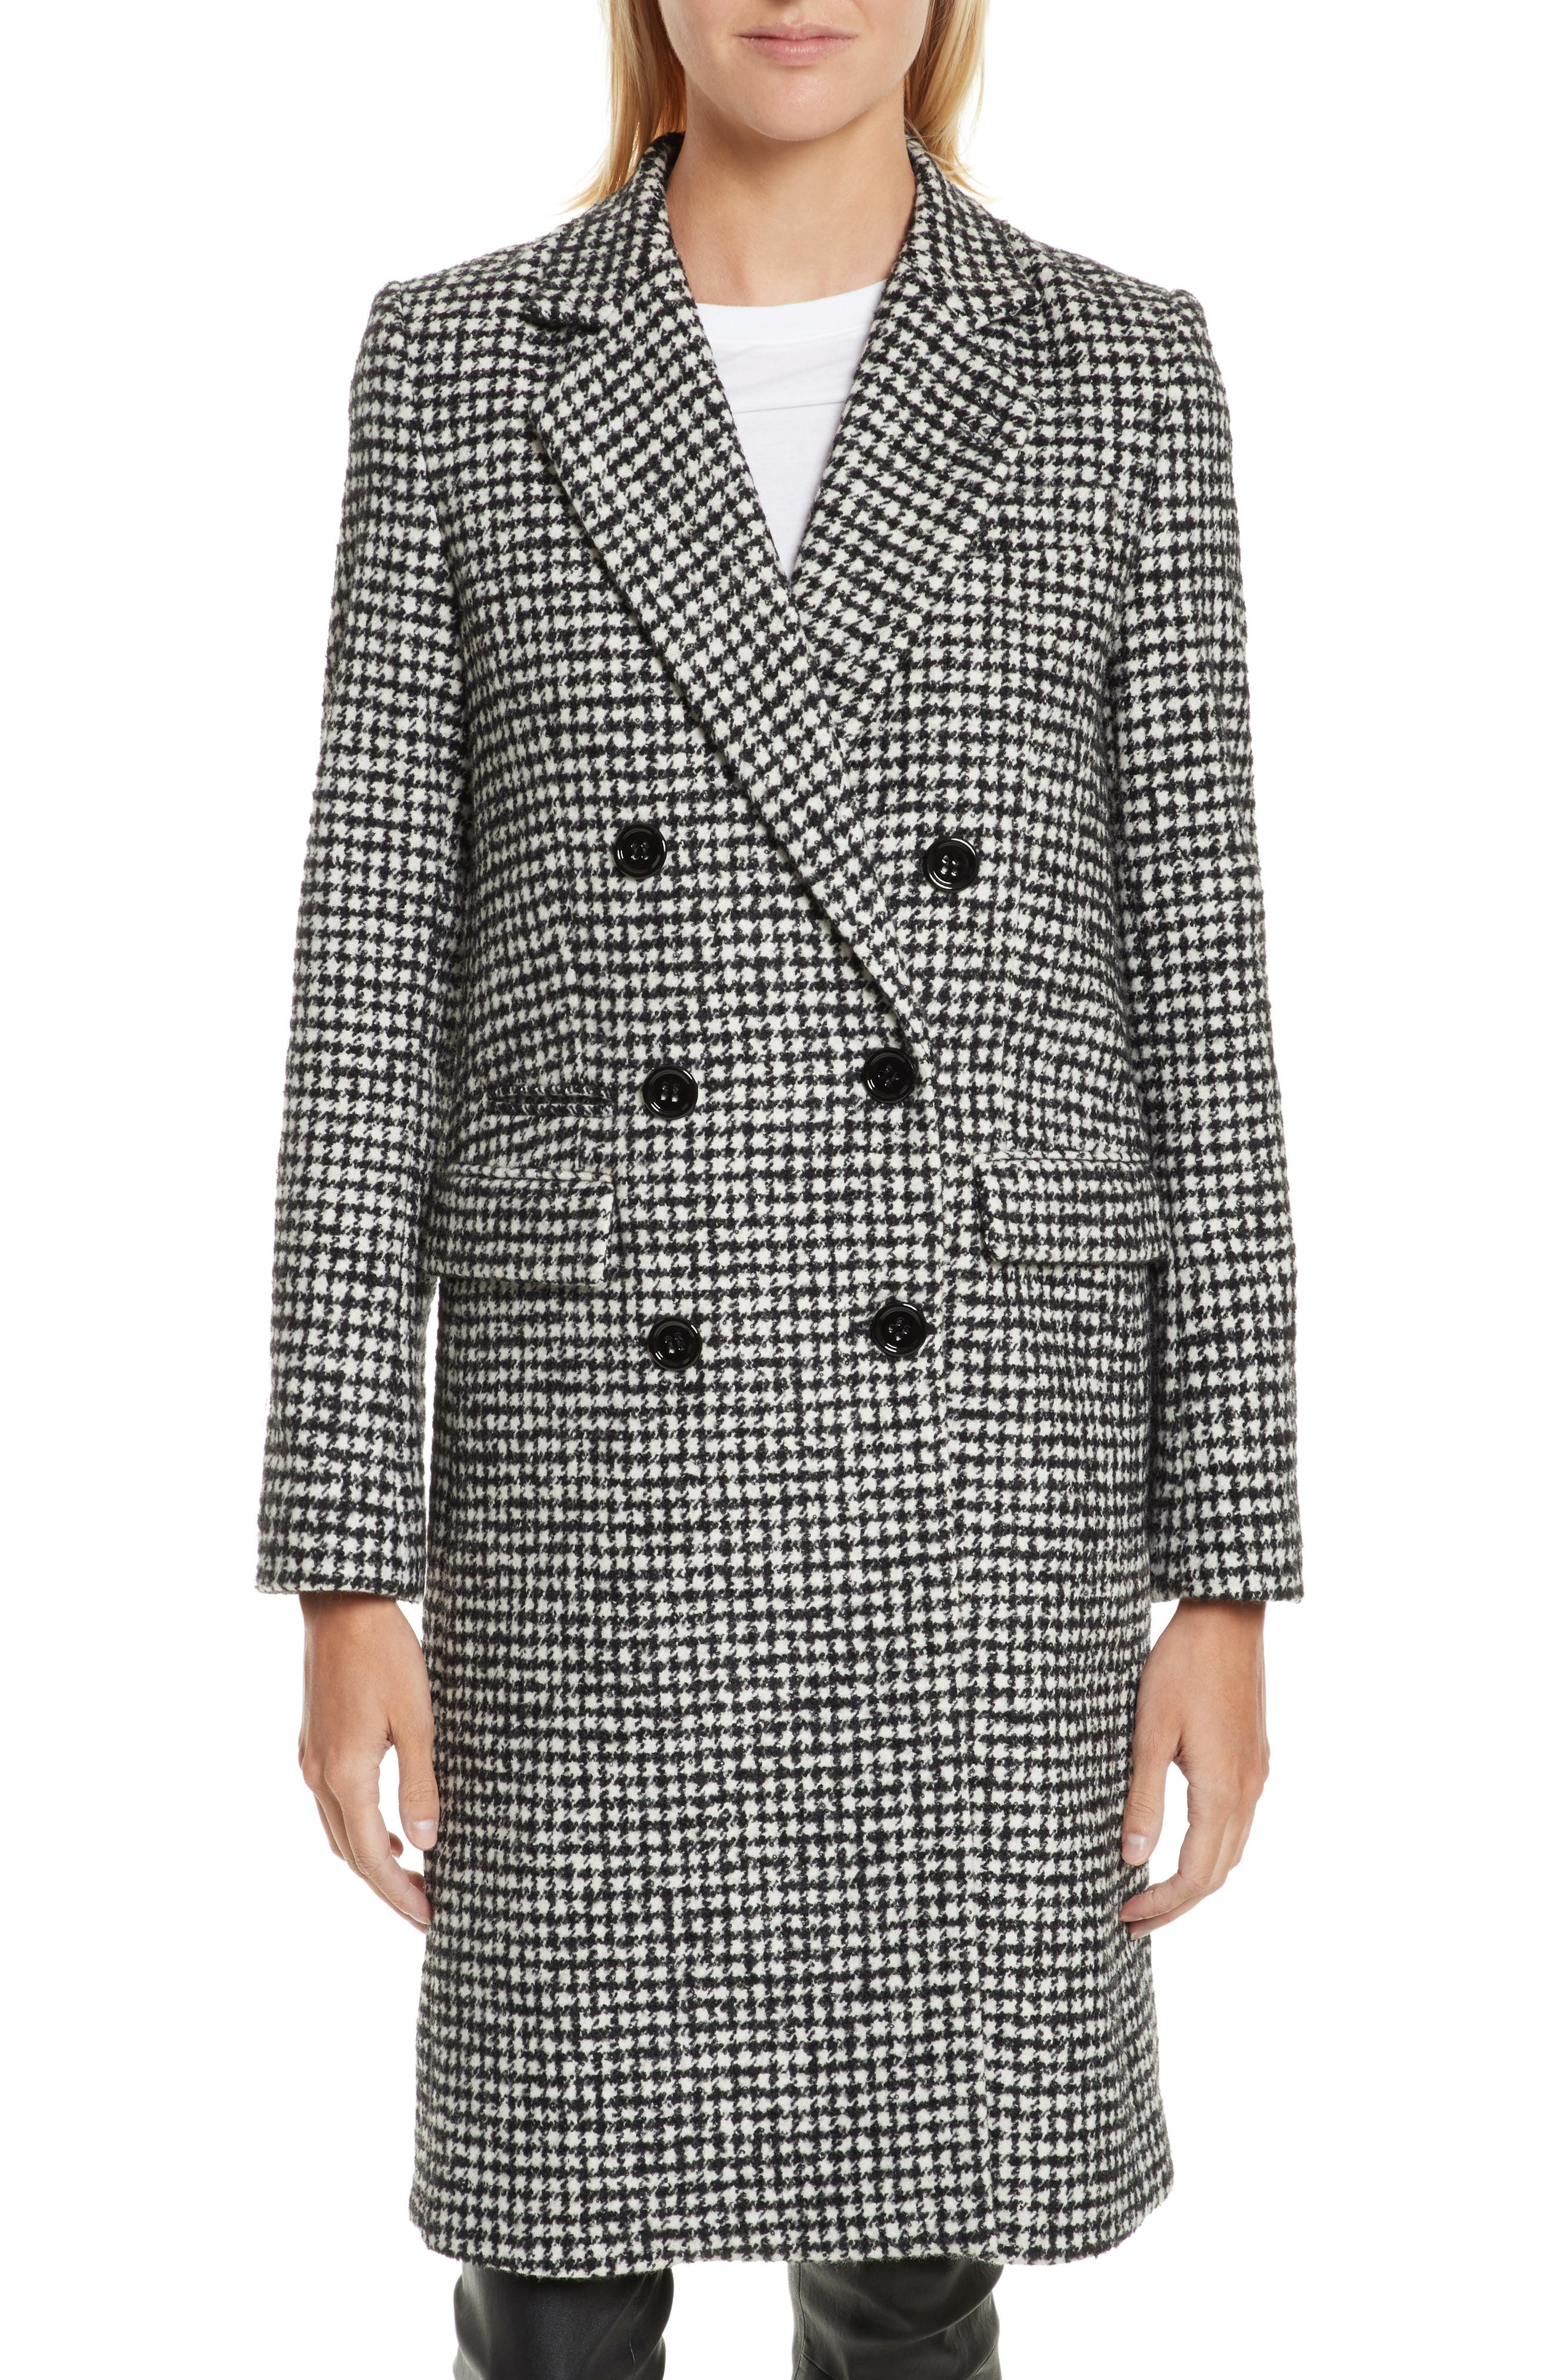 Alternate Image 1 Selected - The Kooples Double-Breasted Wool Blend Coat